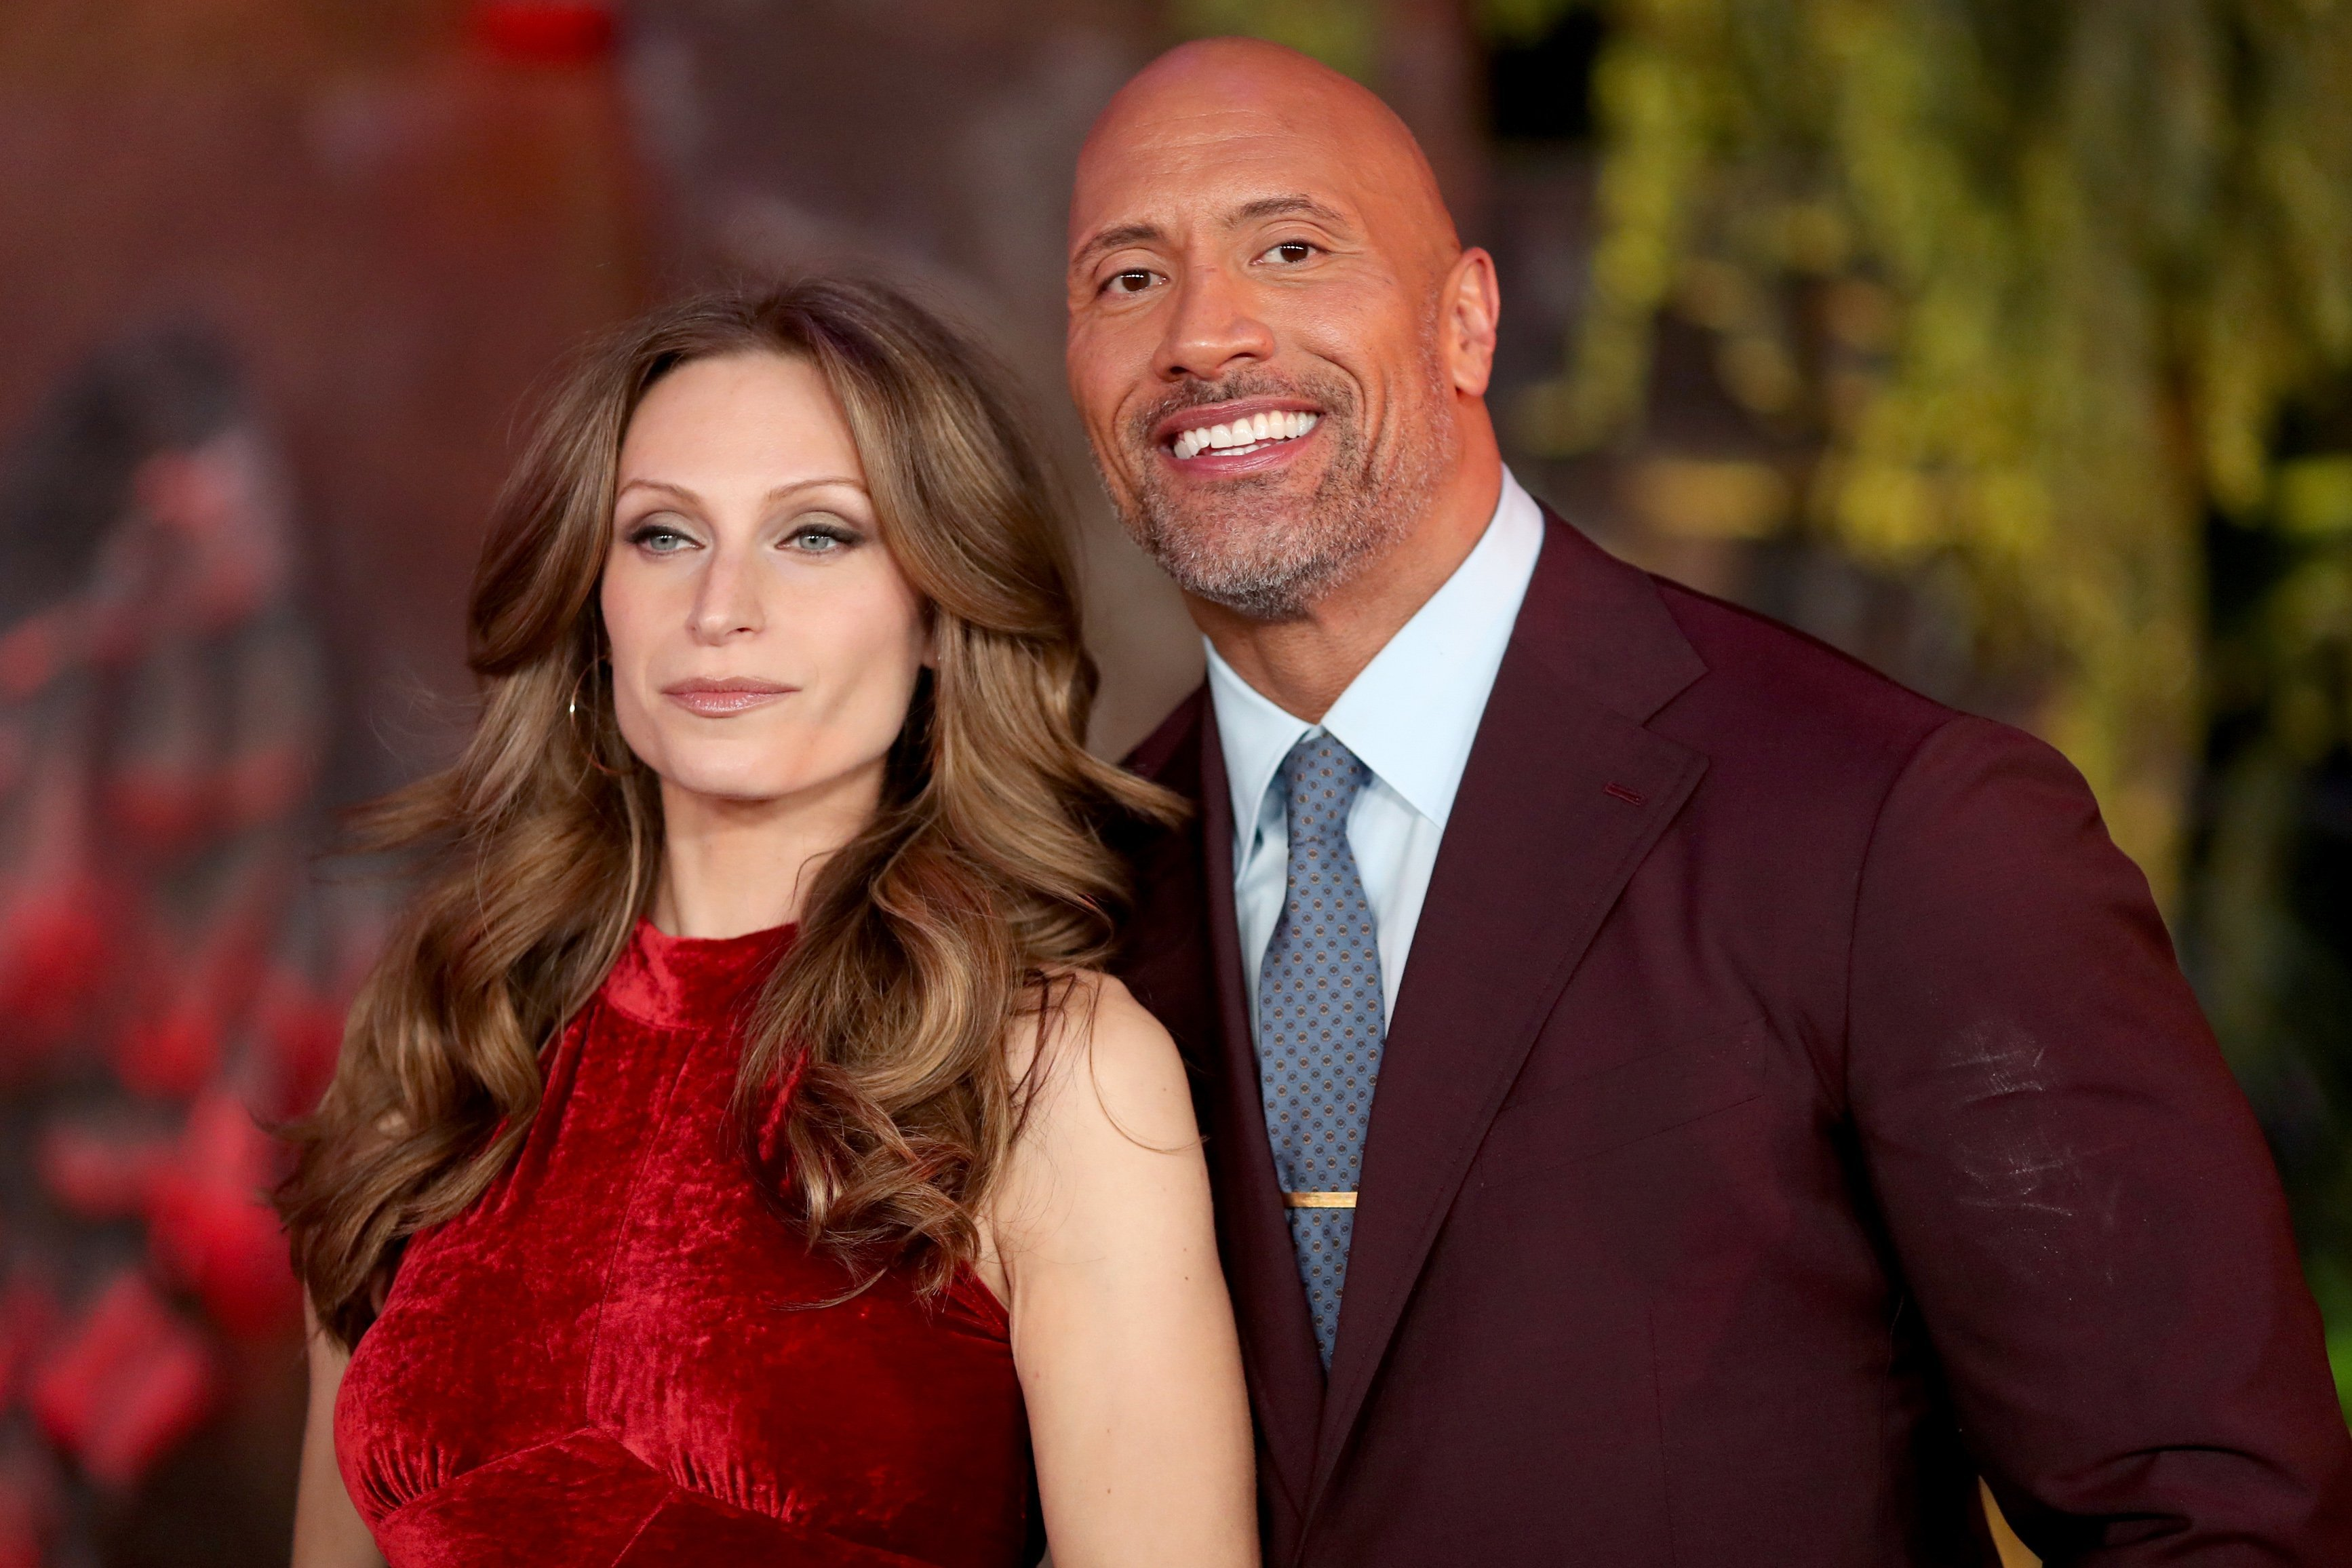 Lauren Hashian & Dwayne Johnson at the premiere of 'Jumanji Welcome To The Jungle' on Dec. 11, 2017 in Hollywood, California | Photo Getty Images